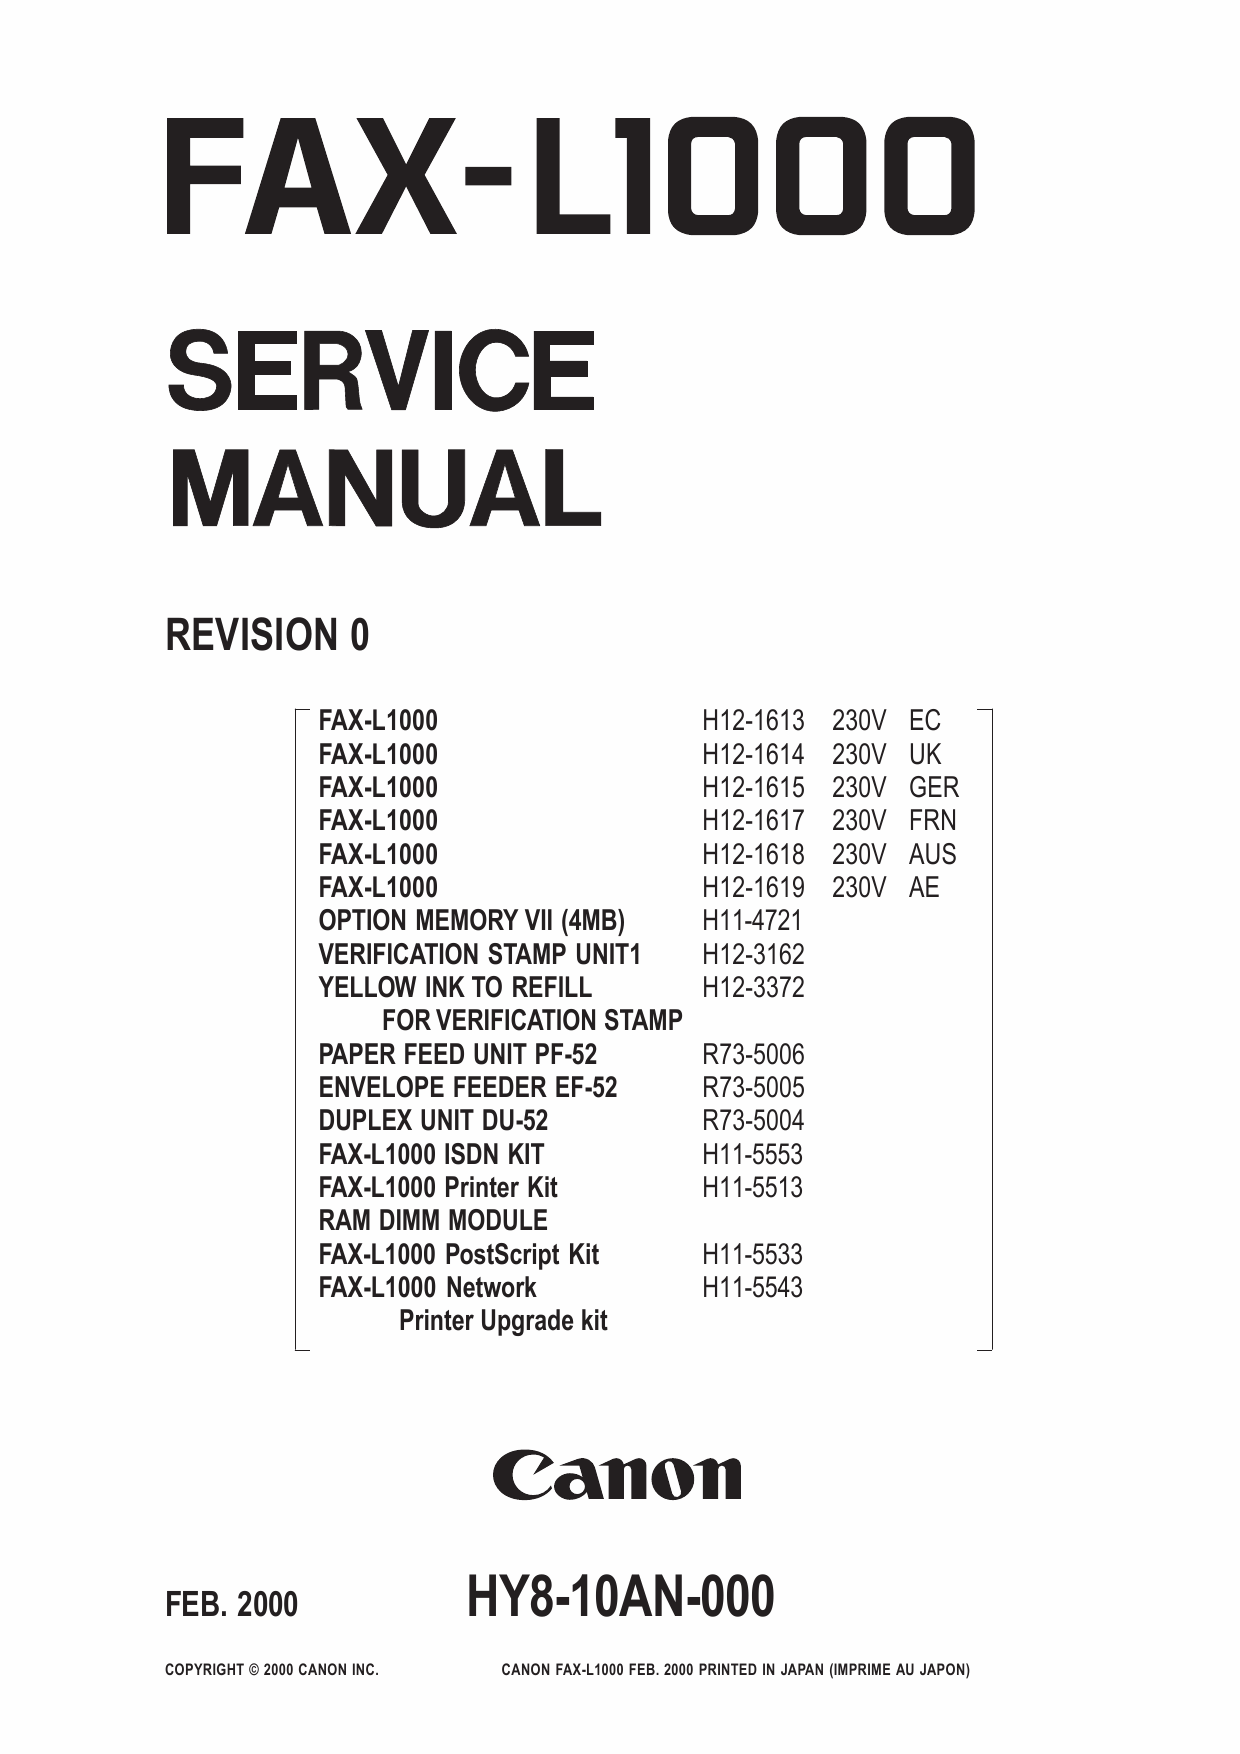 Canon FAX L1000 Parts and Service Manual-1